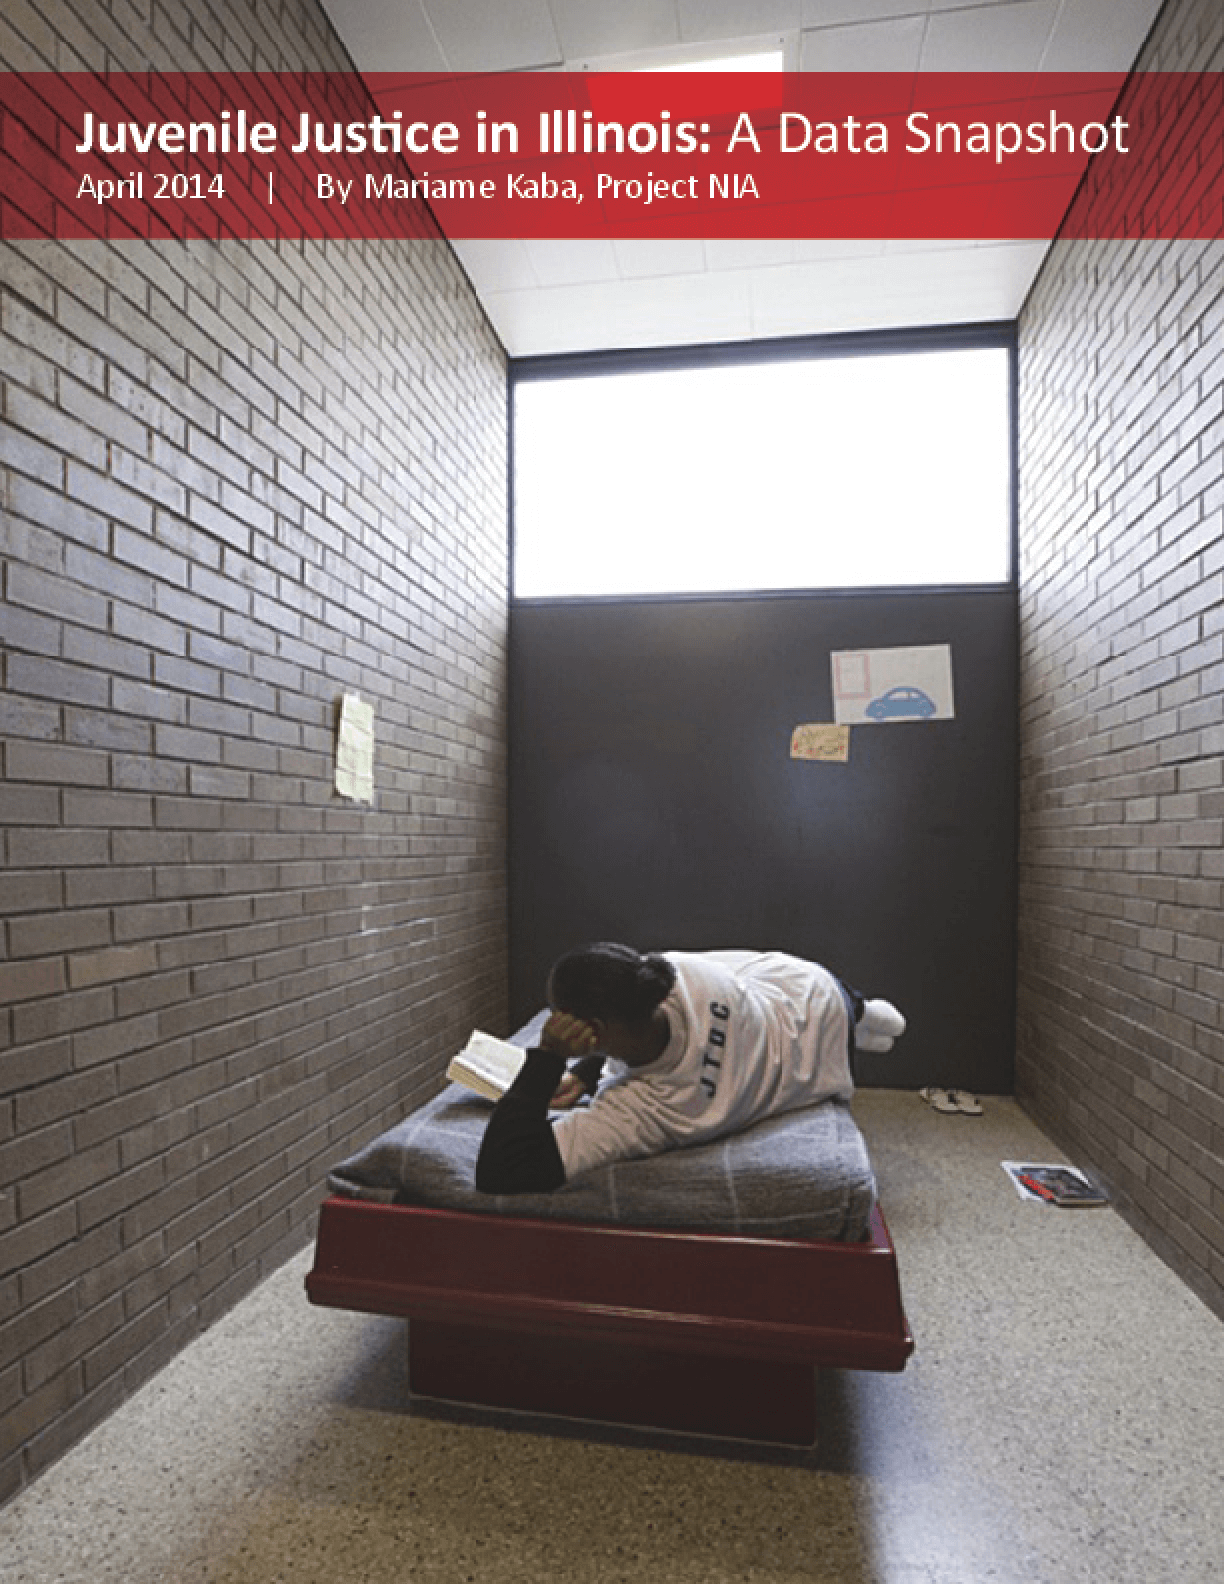 a report on the issues of juvenile crimes and guns in schools in the united states of america The problem of gun violence among serious young offenders and juvenile homicides committed with other guns increased youth gun crimes by focusing on.